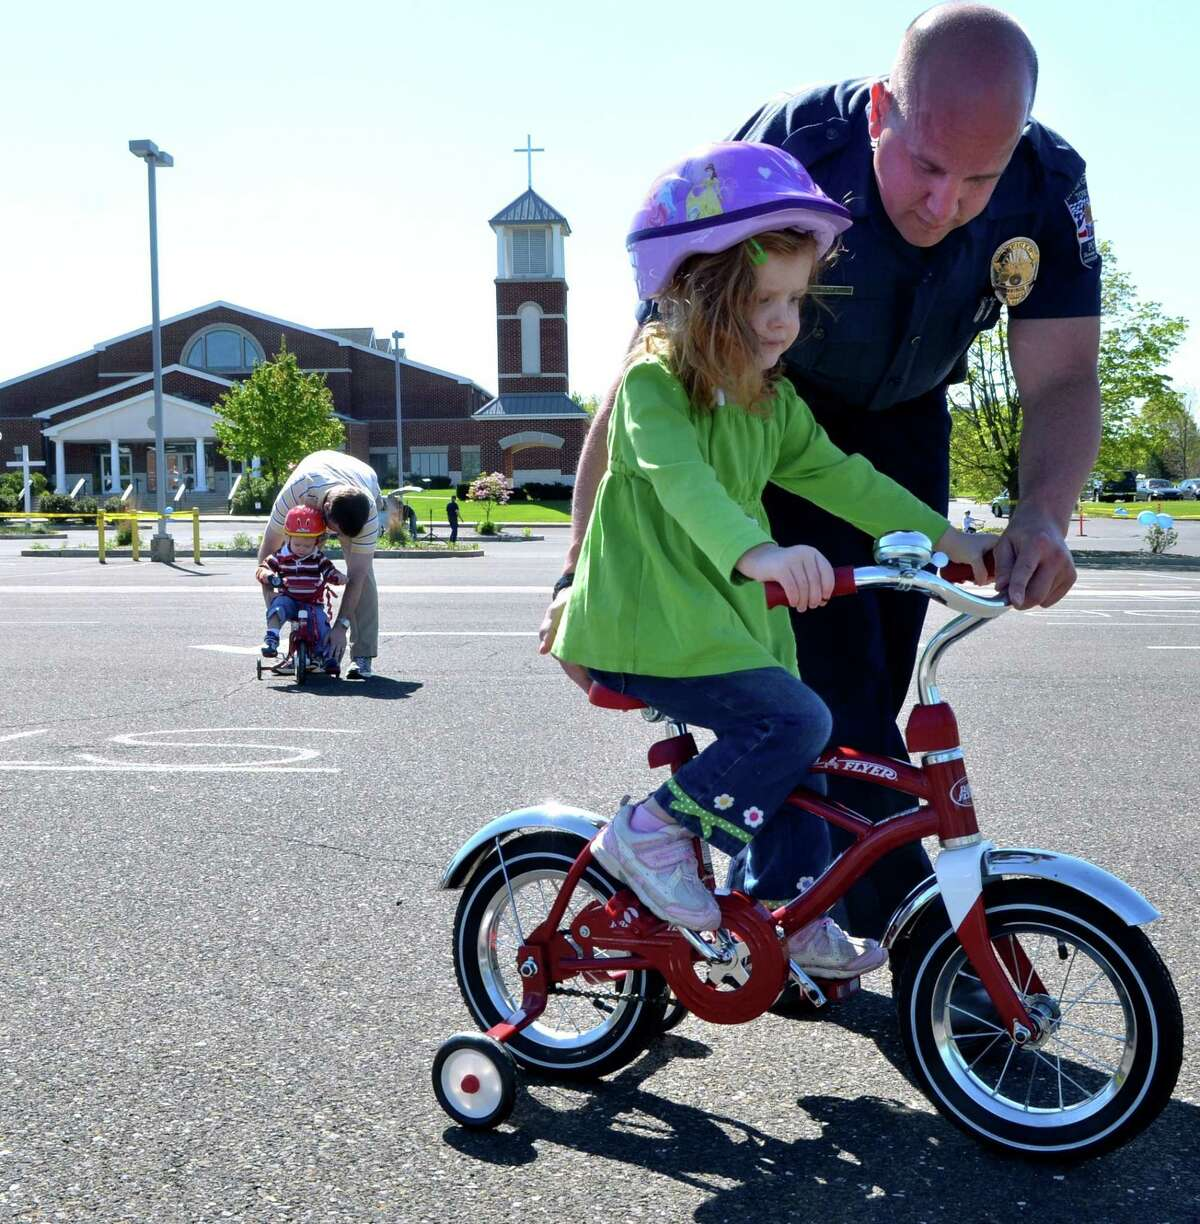 Upper Gwynedd Police Officer Bob Pro leads Clare Finley, 3, through a course during a free Family Bike Saftey Rodeo event in this file photo from The Reporter.